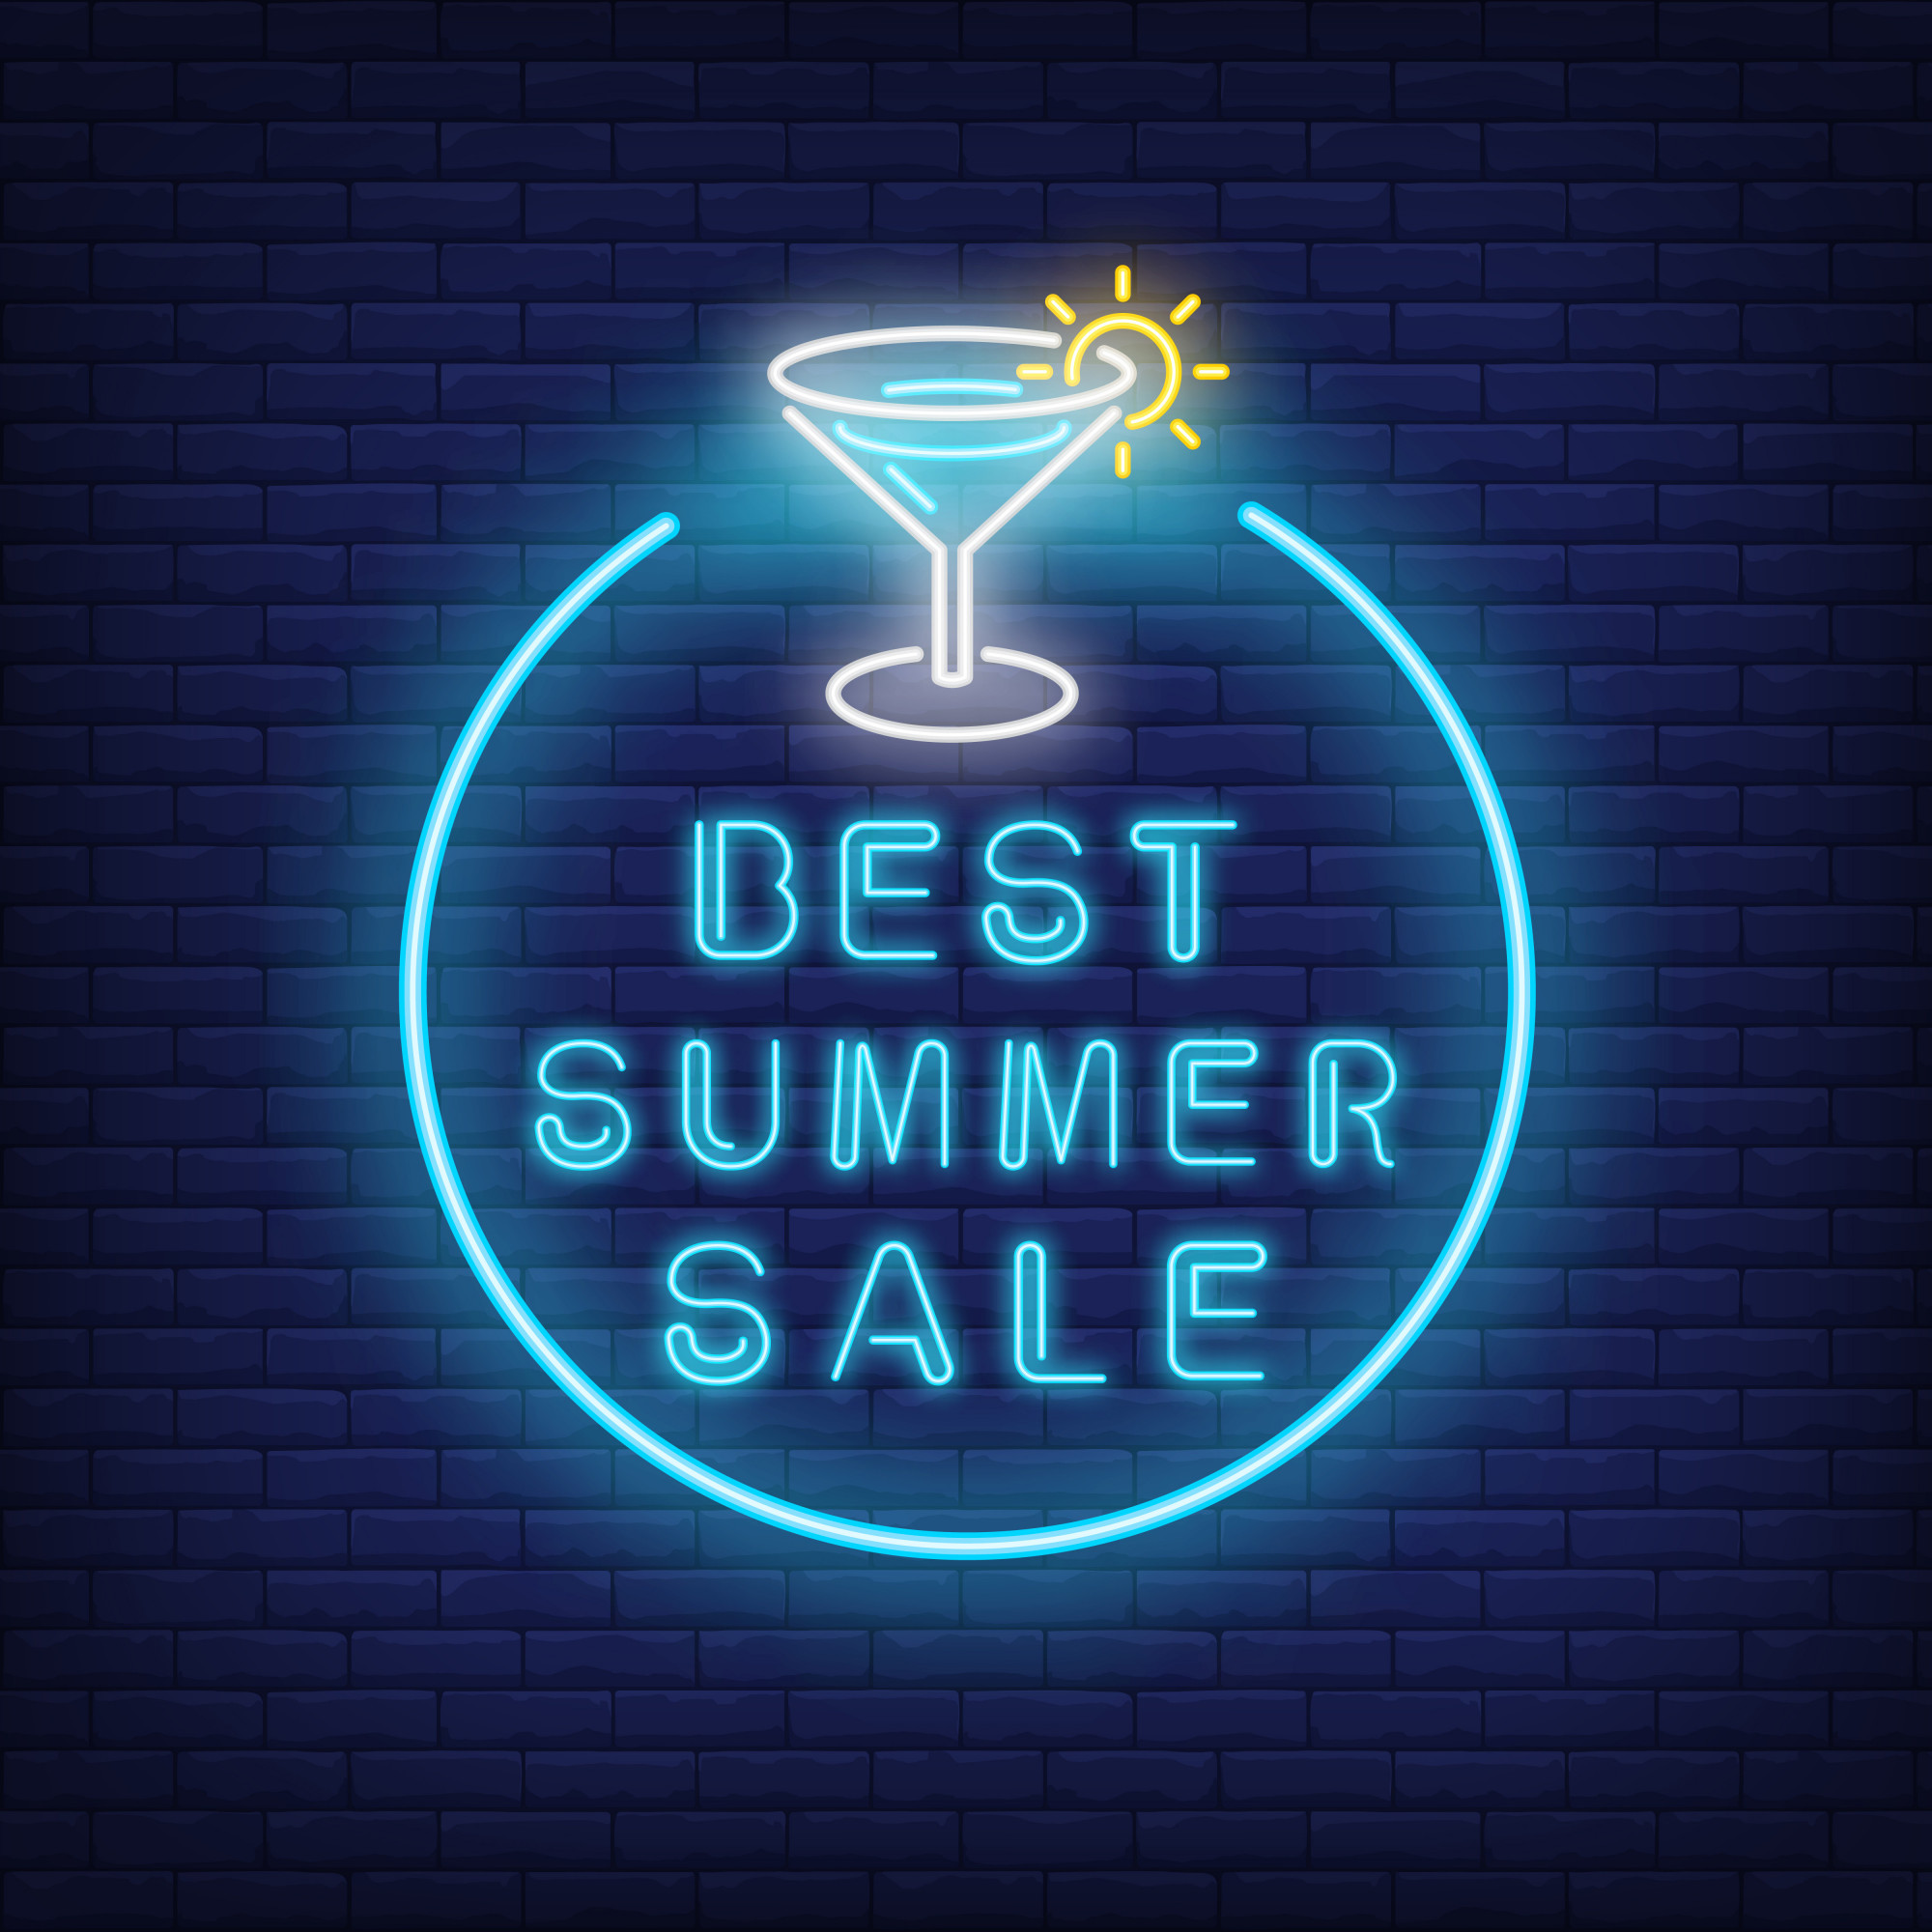 Best summer sale neon text and cocktail in circle. Seasonal offer or sale advertisement